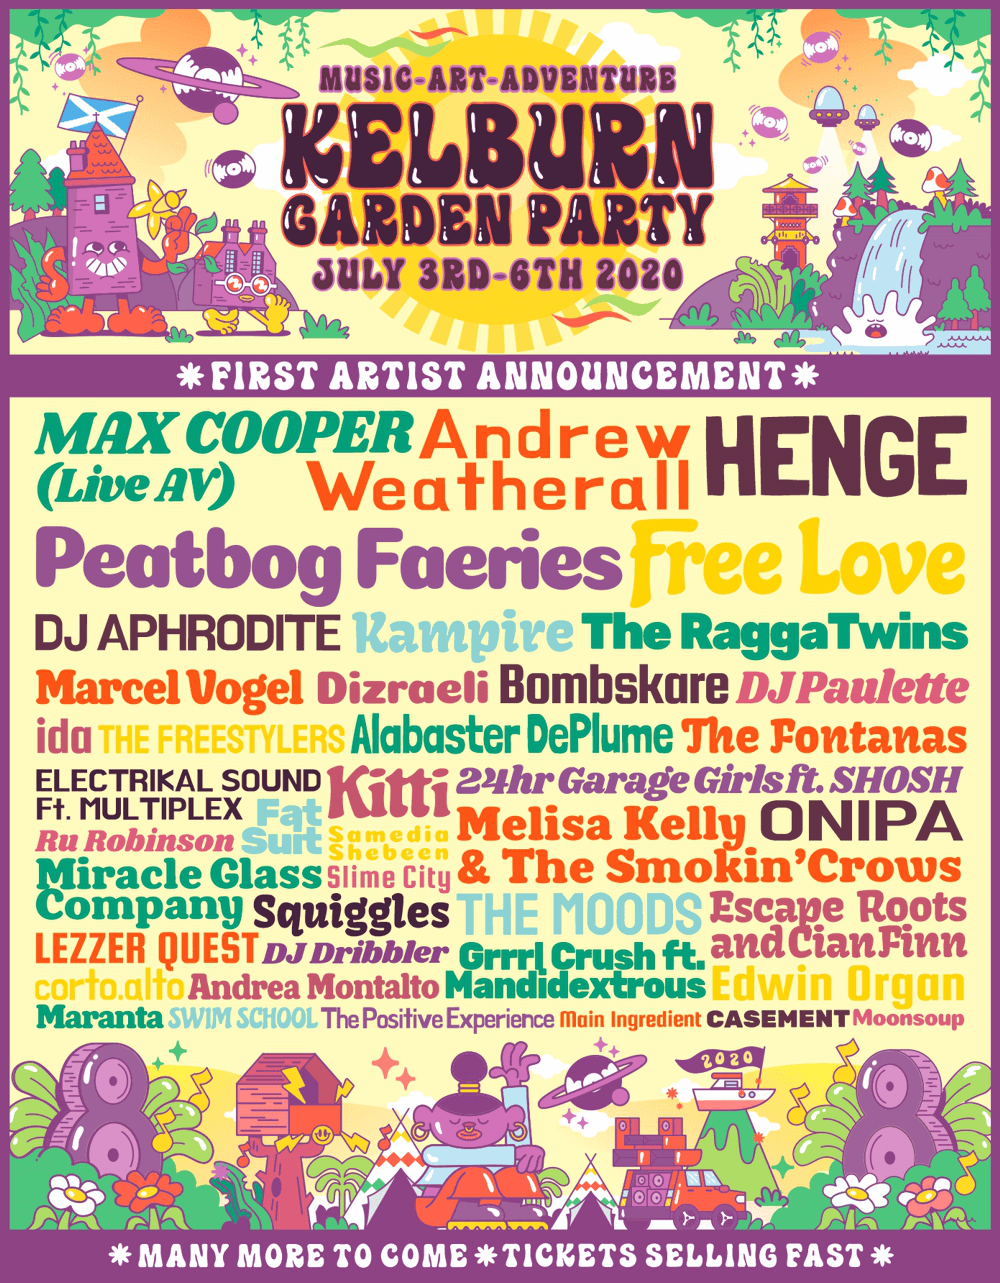 Kelburn Garden Party 2020 flyer